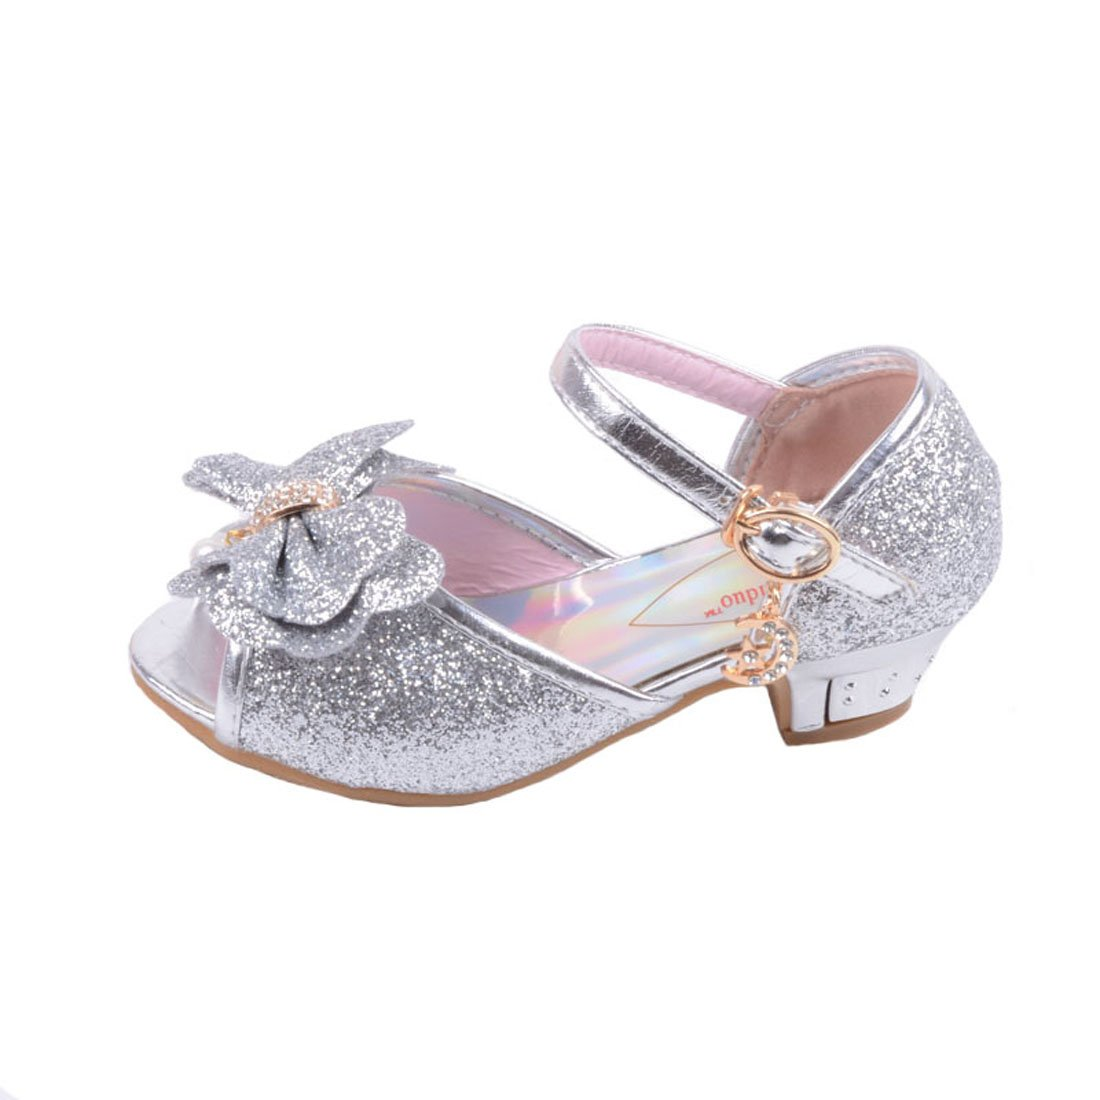 JTENGYAO Baby Girls Princess Shoes Glitter Dance Party Bridesmaids Low Heels Shoes Buckle Strap